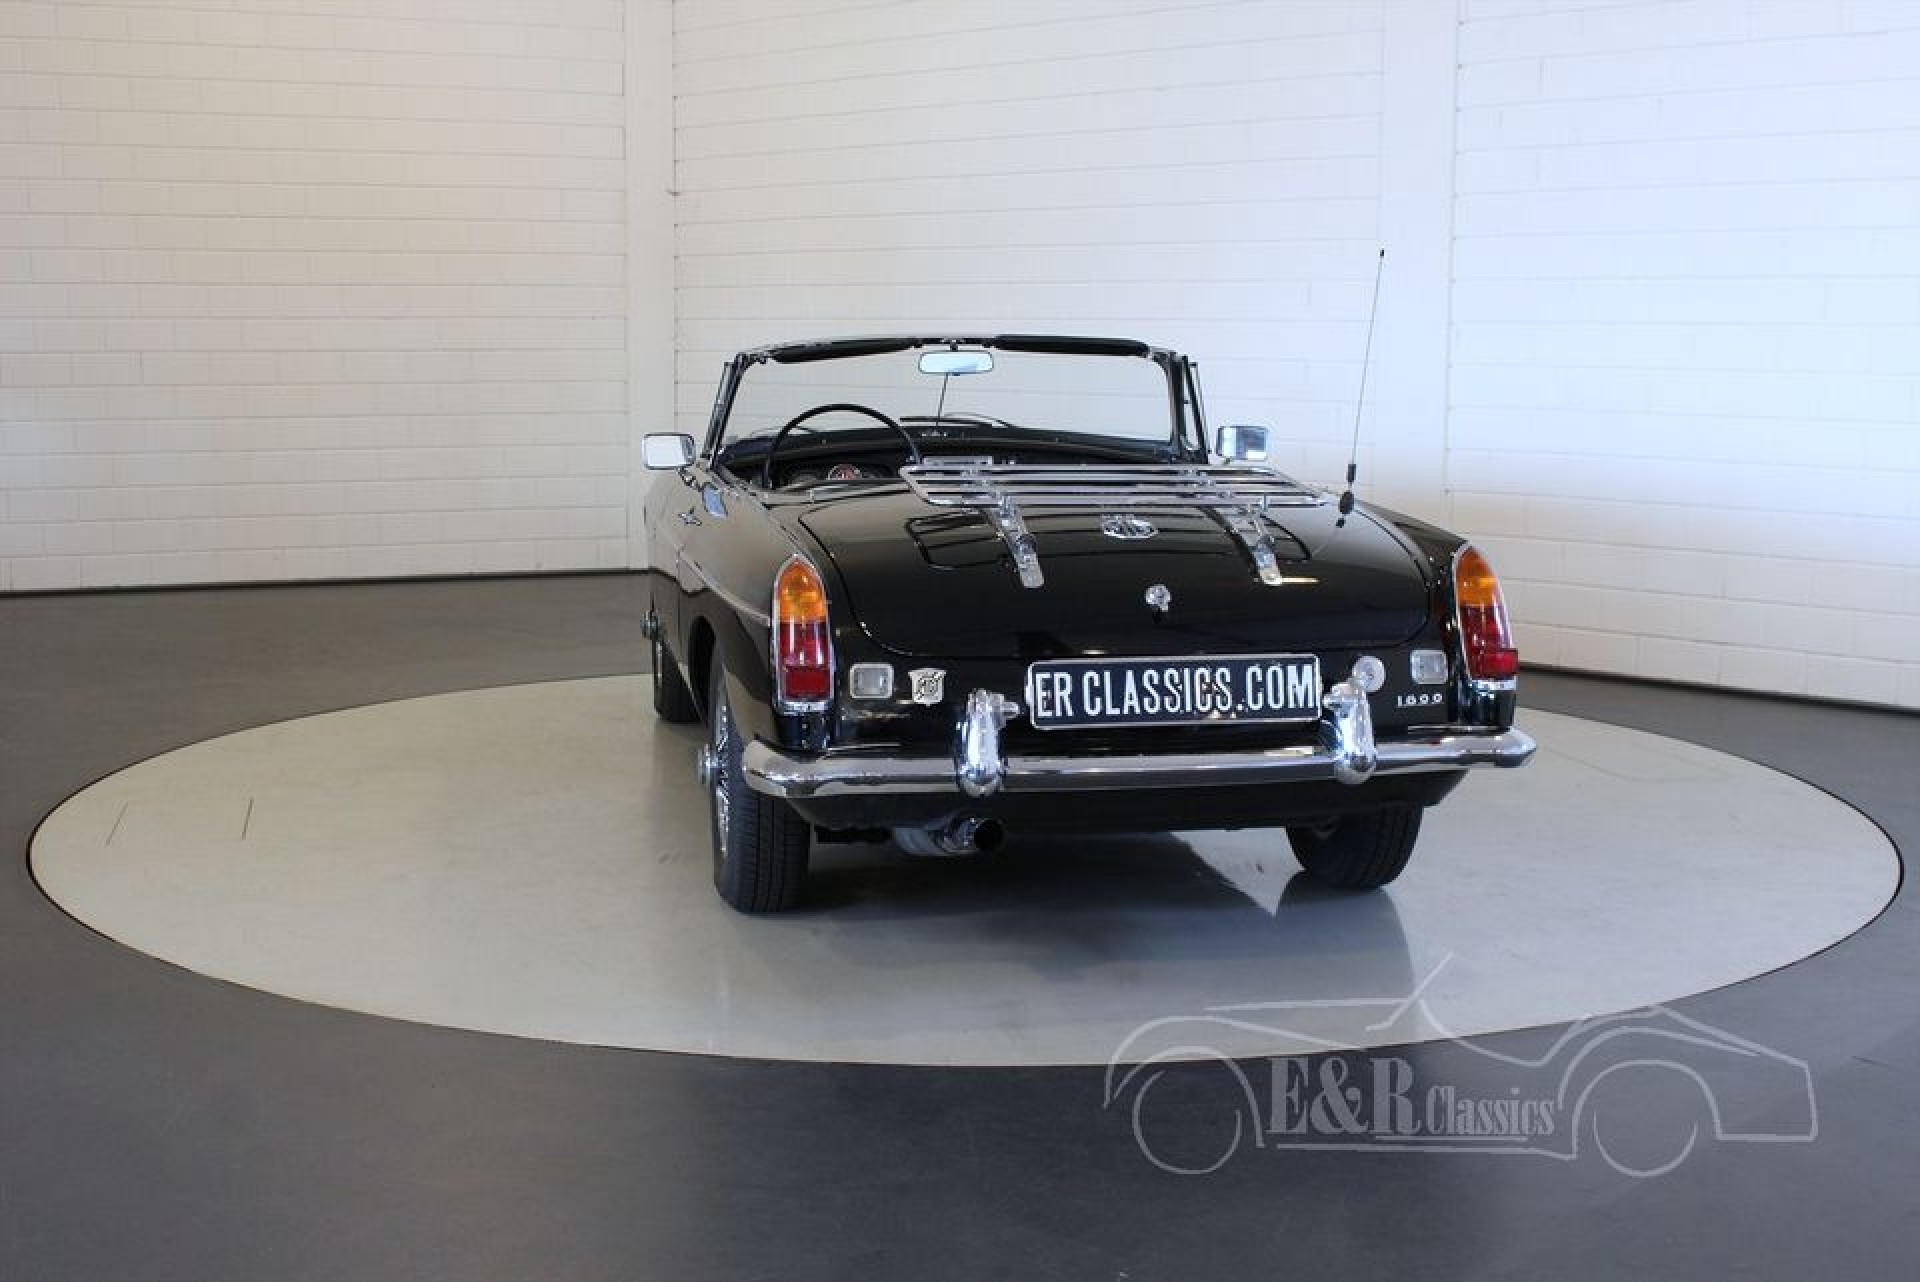 Mgb Roadster 1966 For Sale At Erclassics